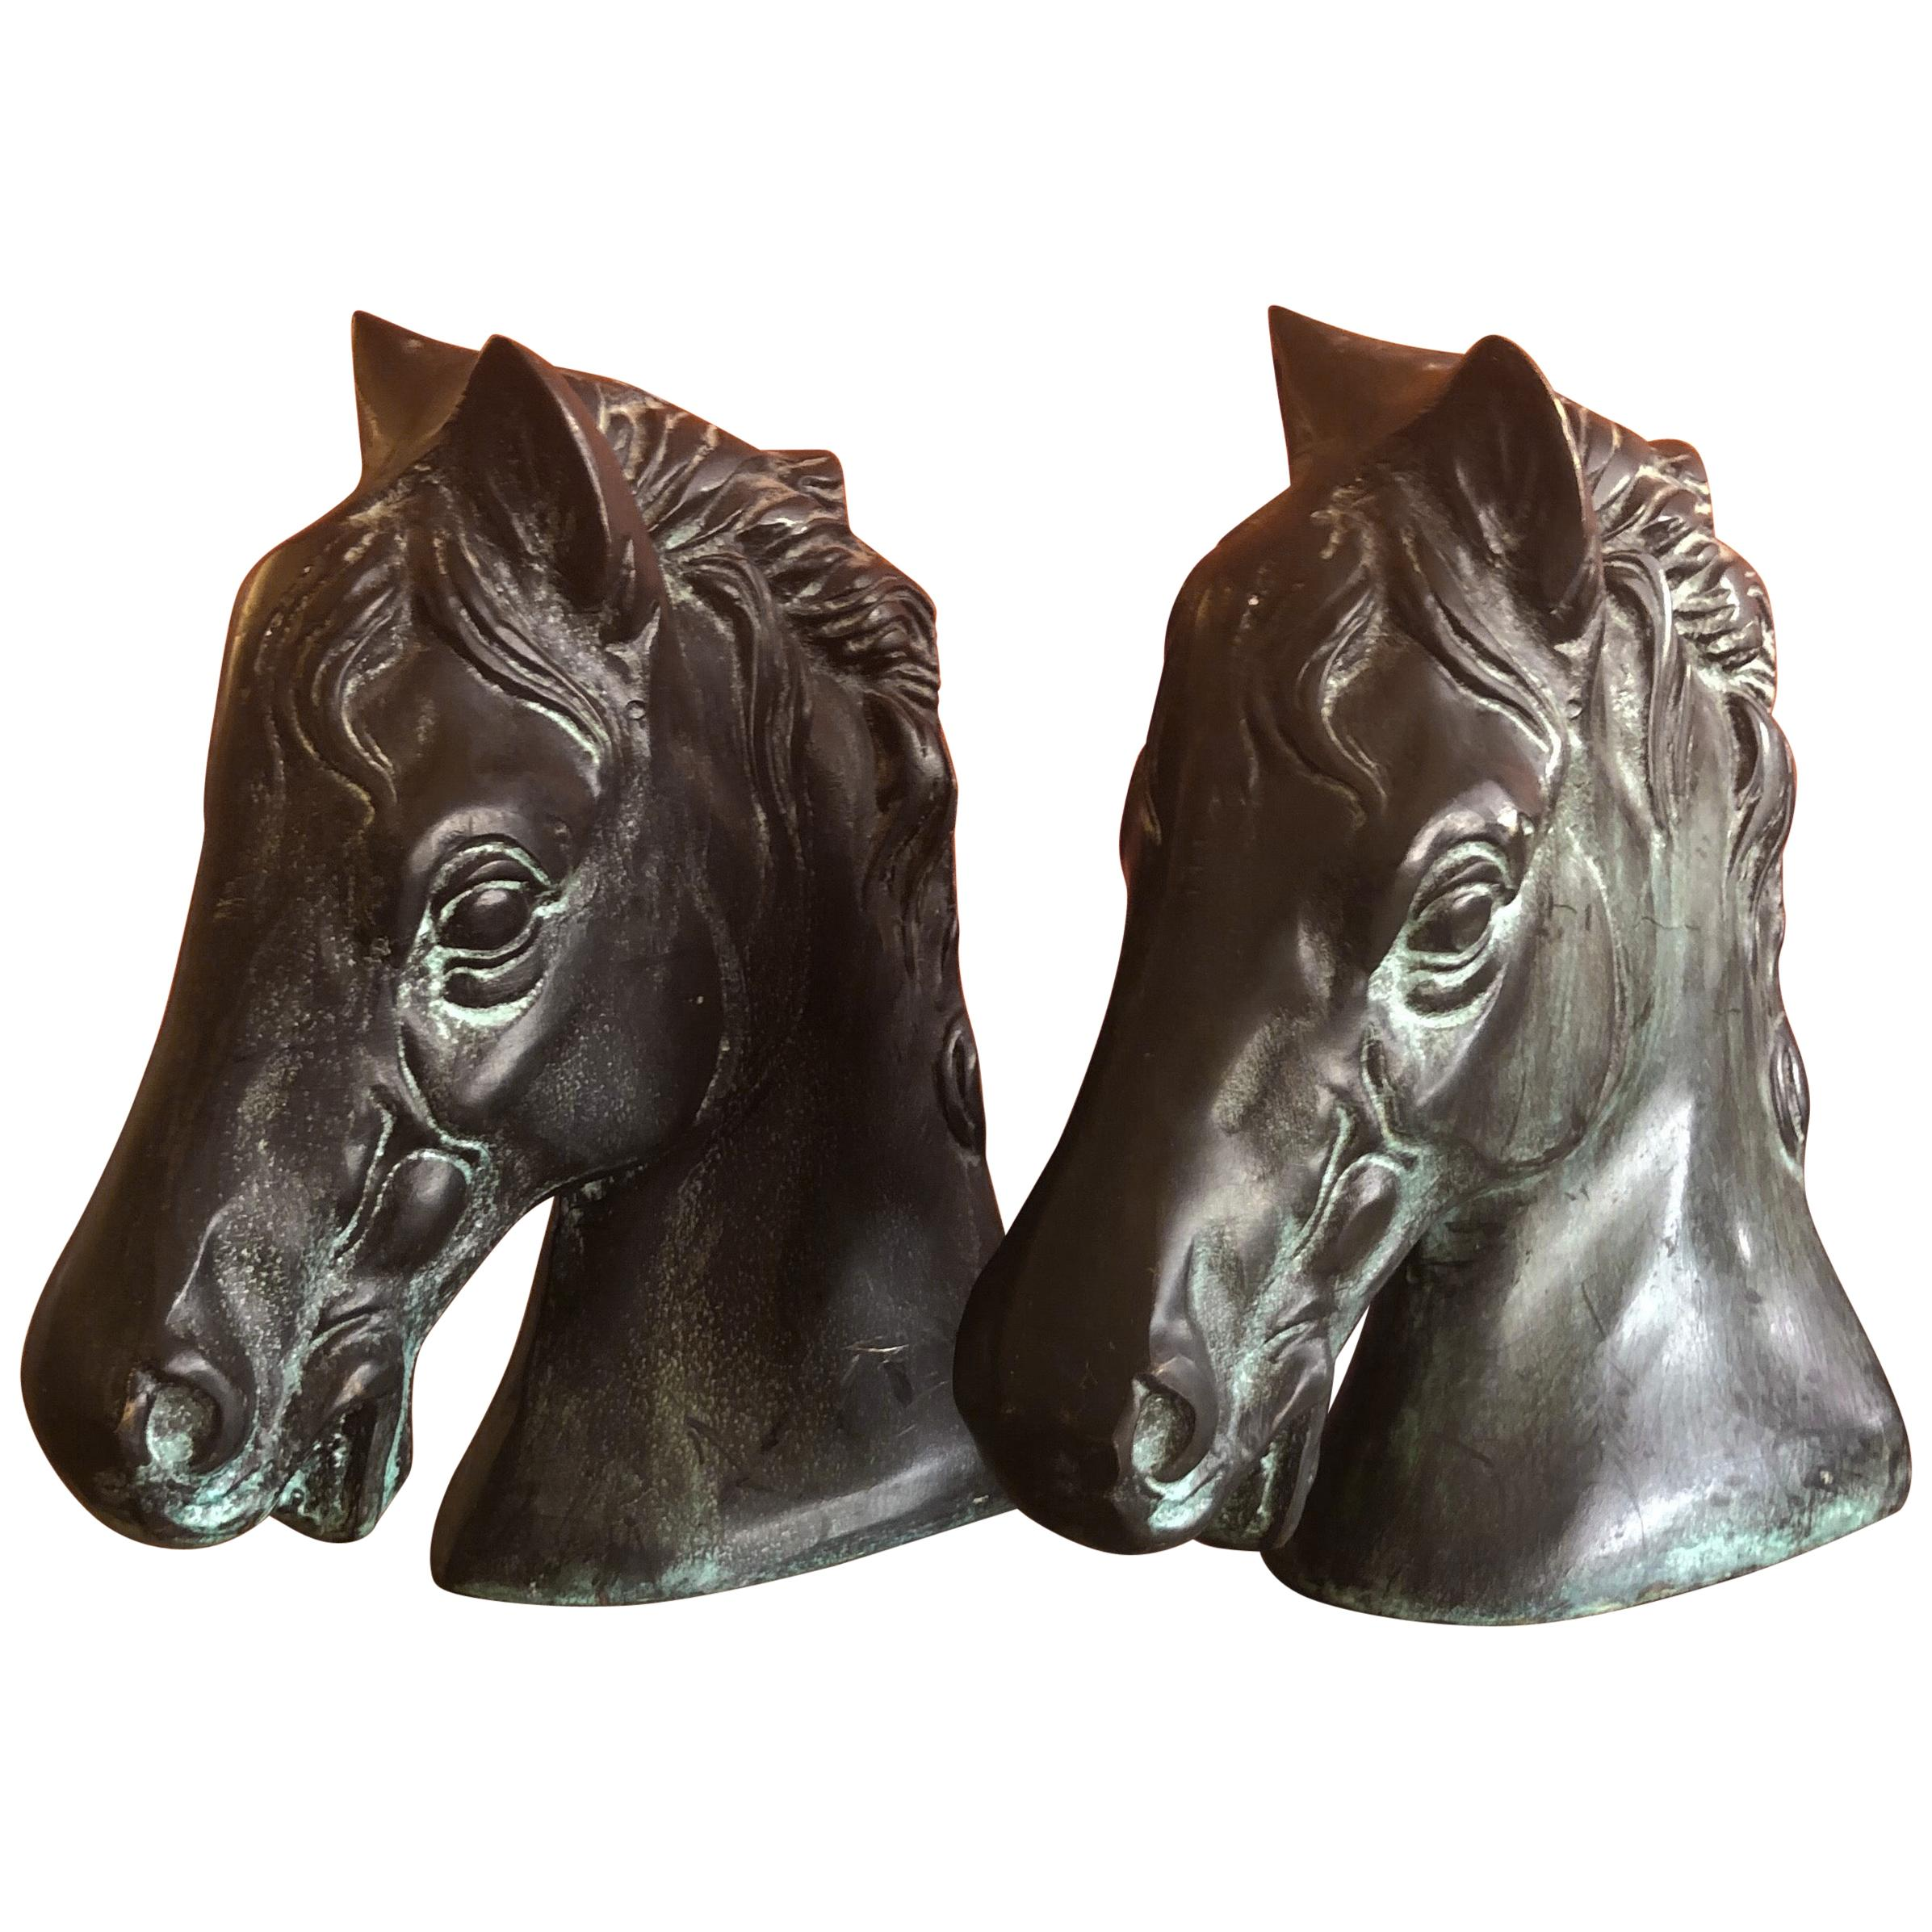 Pair of Horse Head Bookends in Bronze